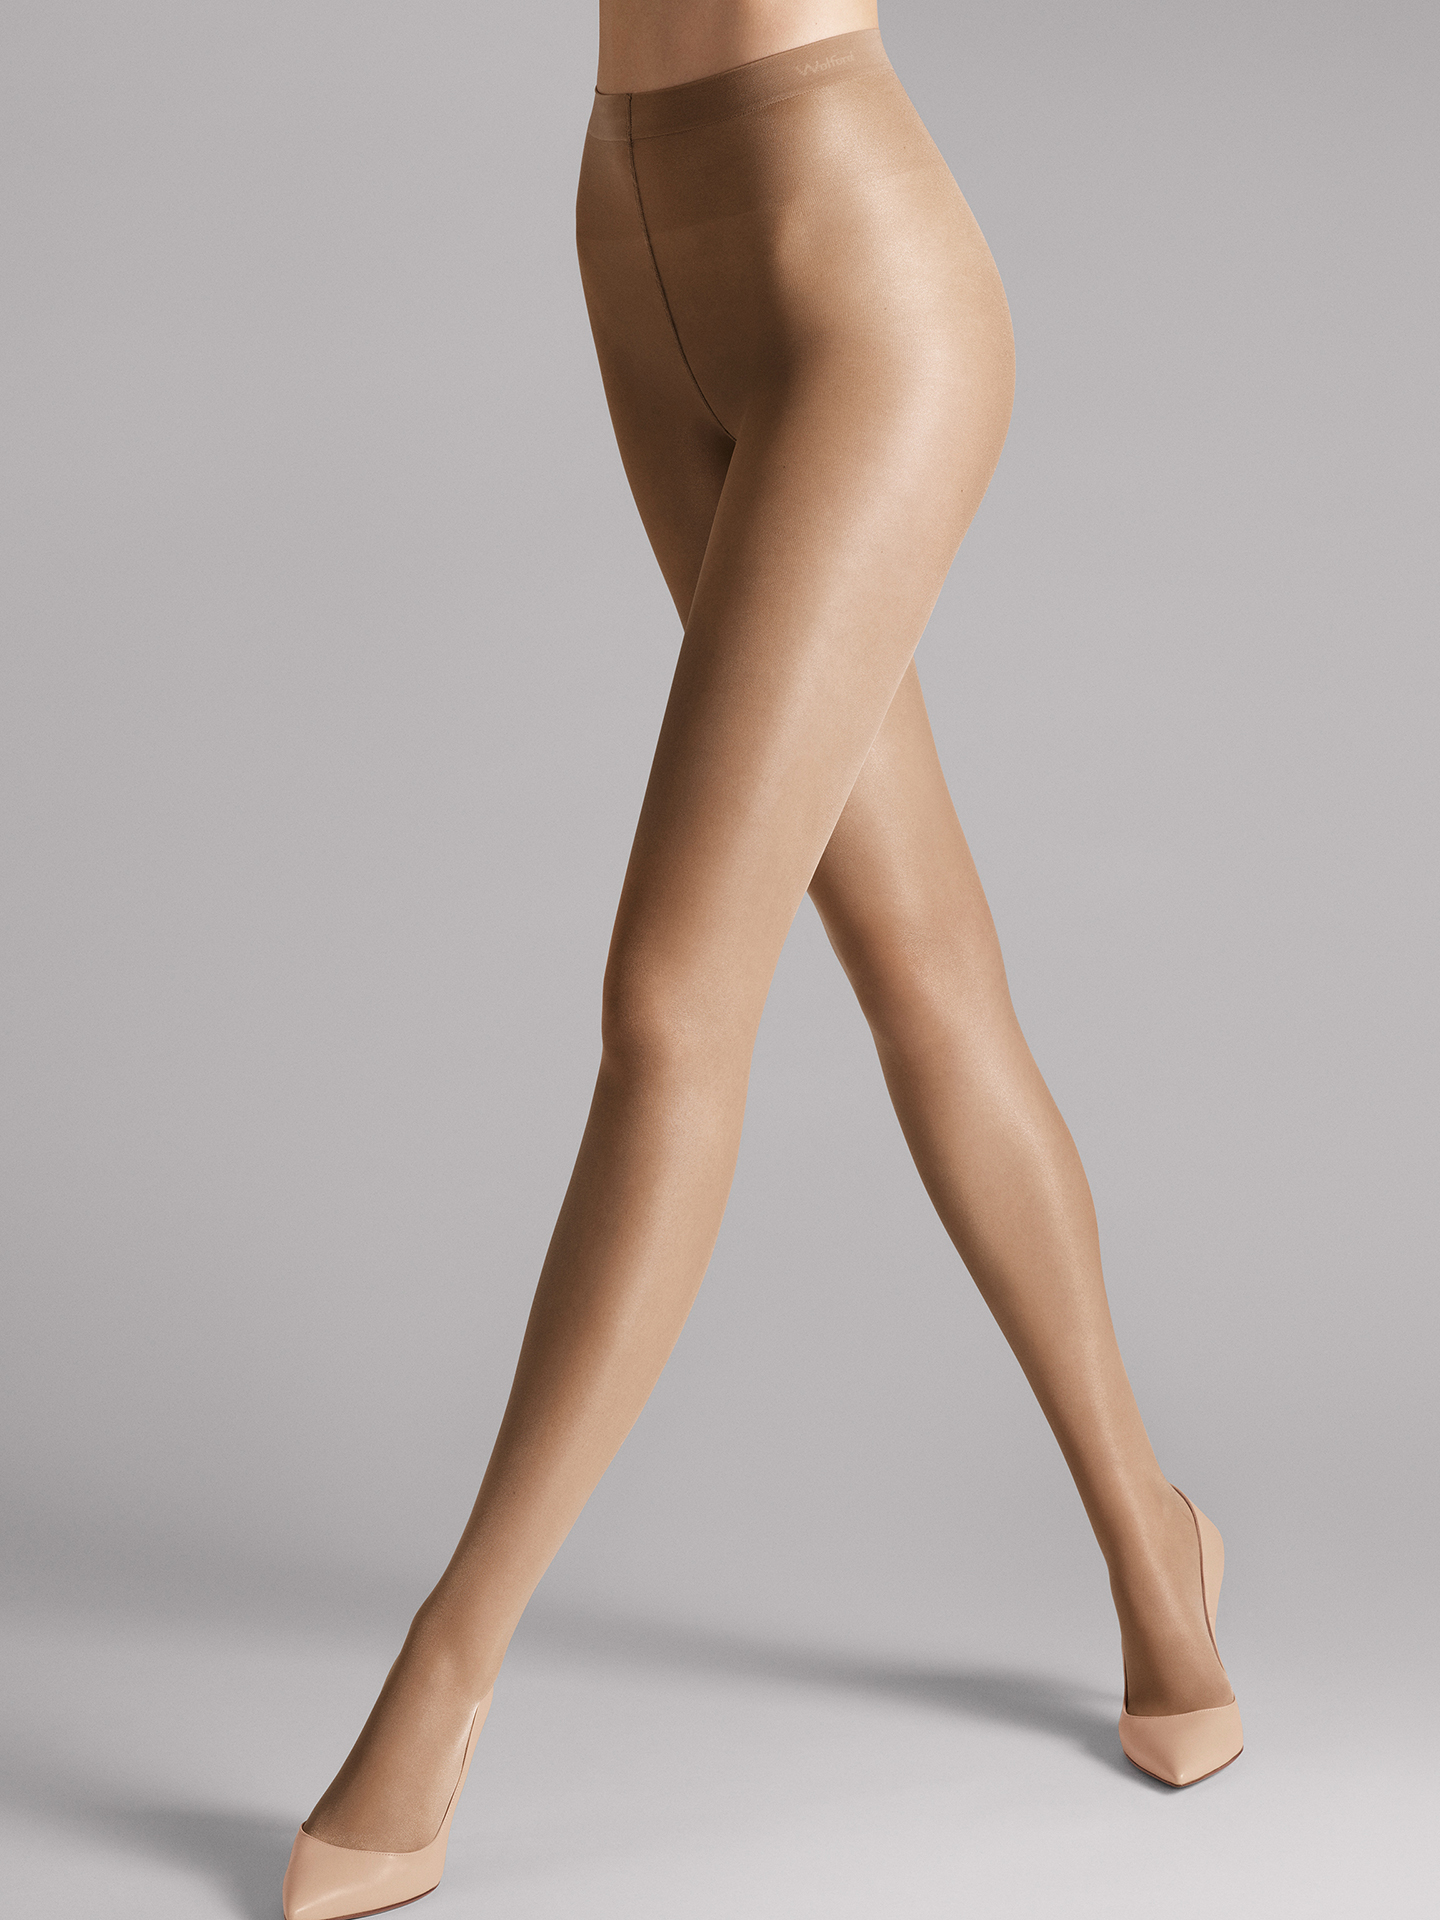 Wolford Apparel & Accessories > Clothing > Collant Satin Touch 20 - 4739 - M